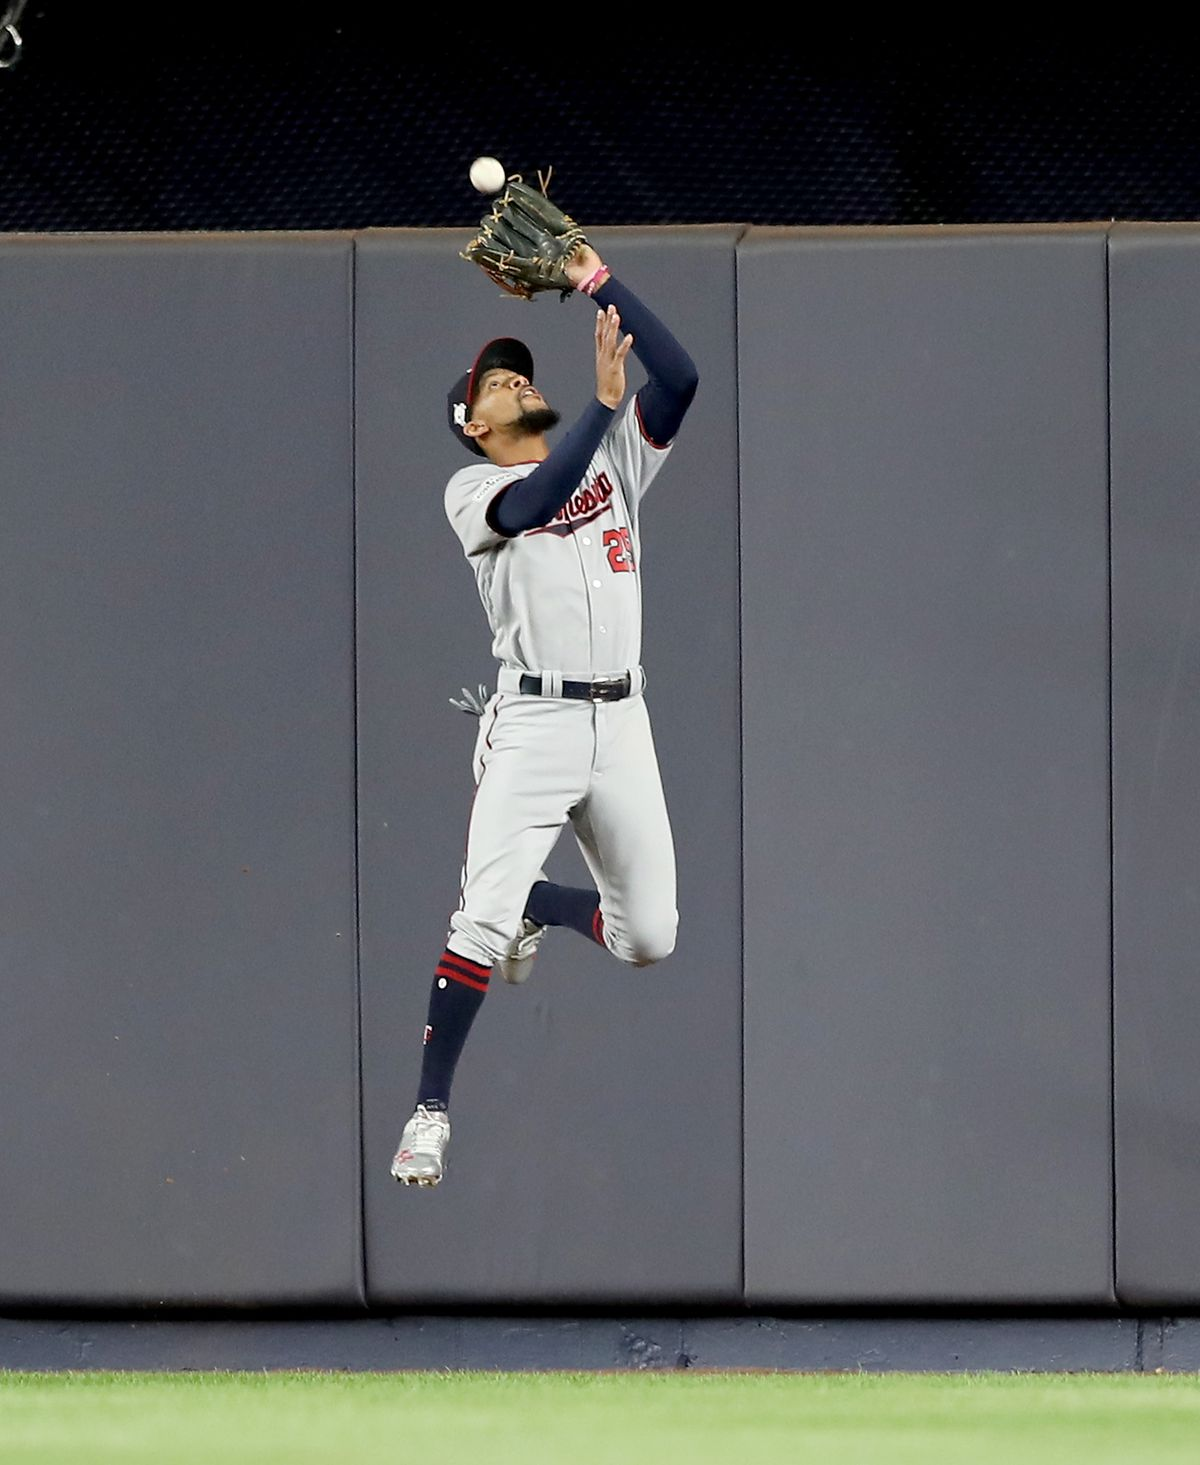 Byron Buxton jumps to catch a ball on the warning track